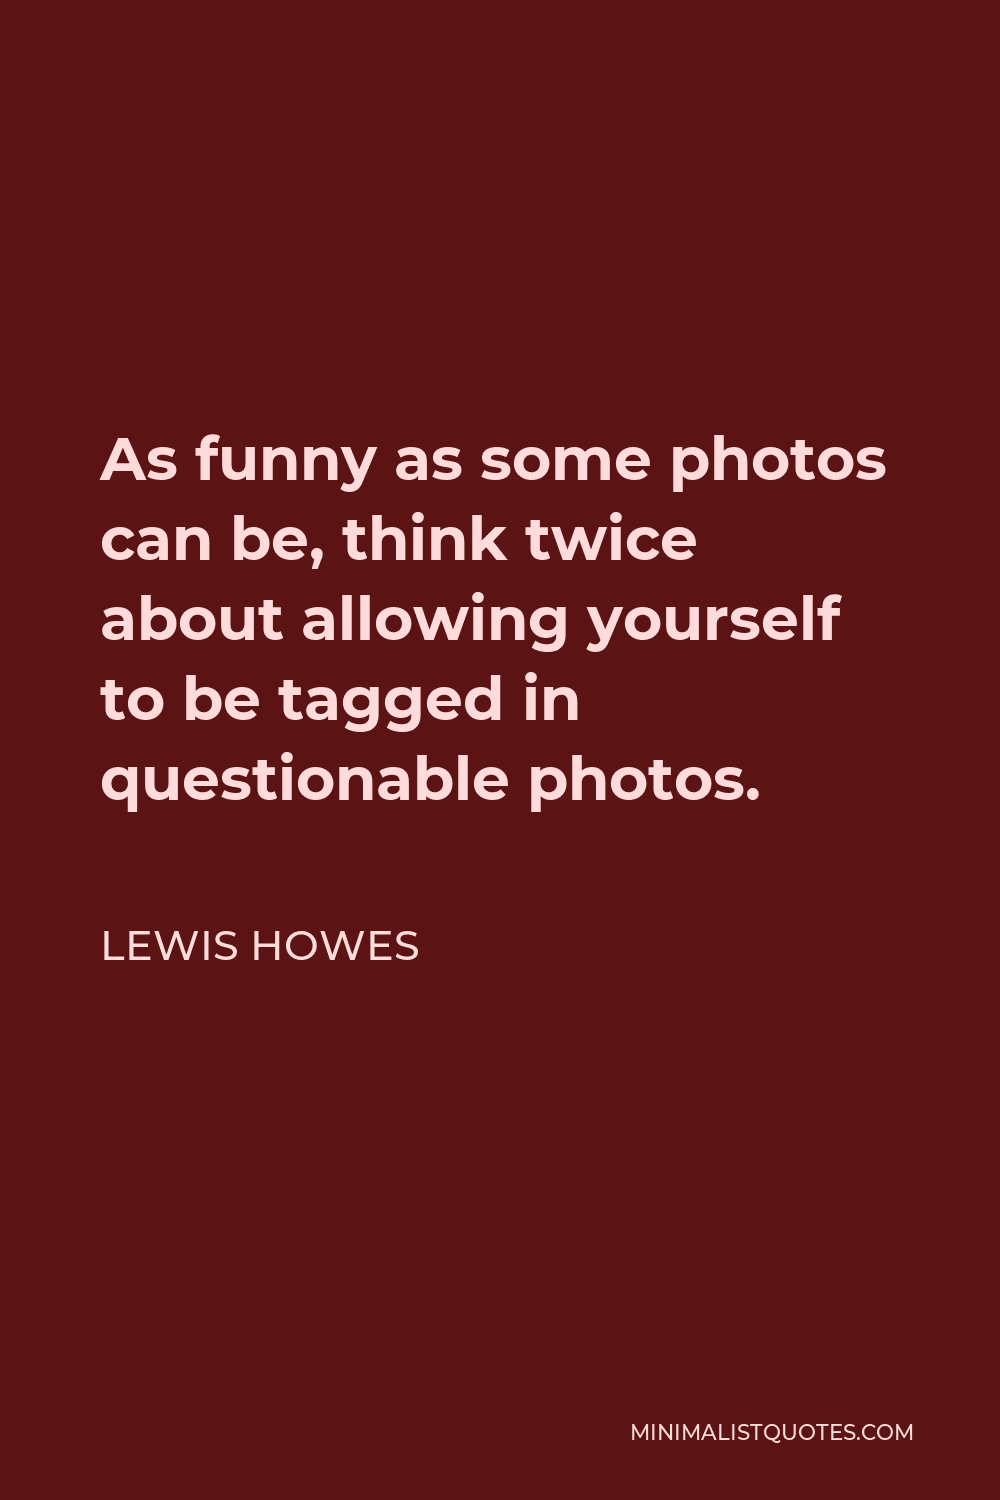 Lewis Howes Quote - As funny as some photos can be, think twice about allowing yourself to be tagged in questionable photos.